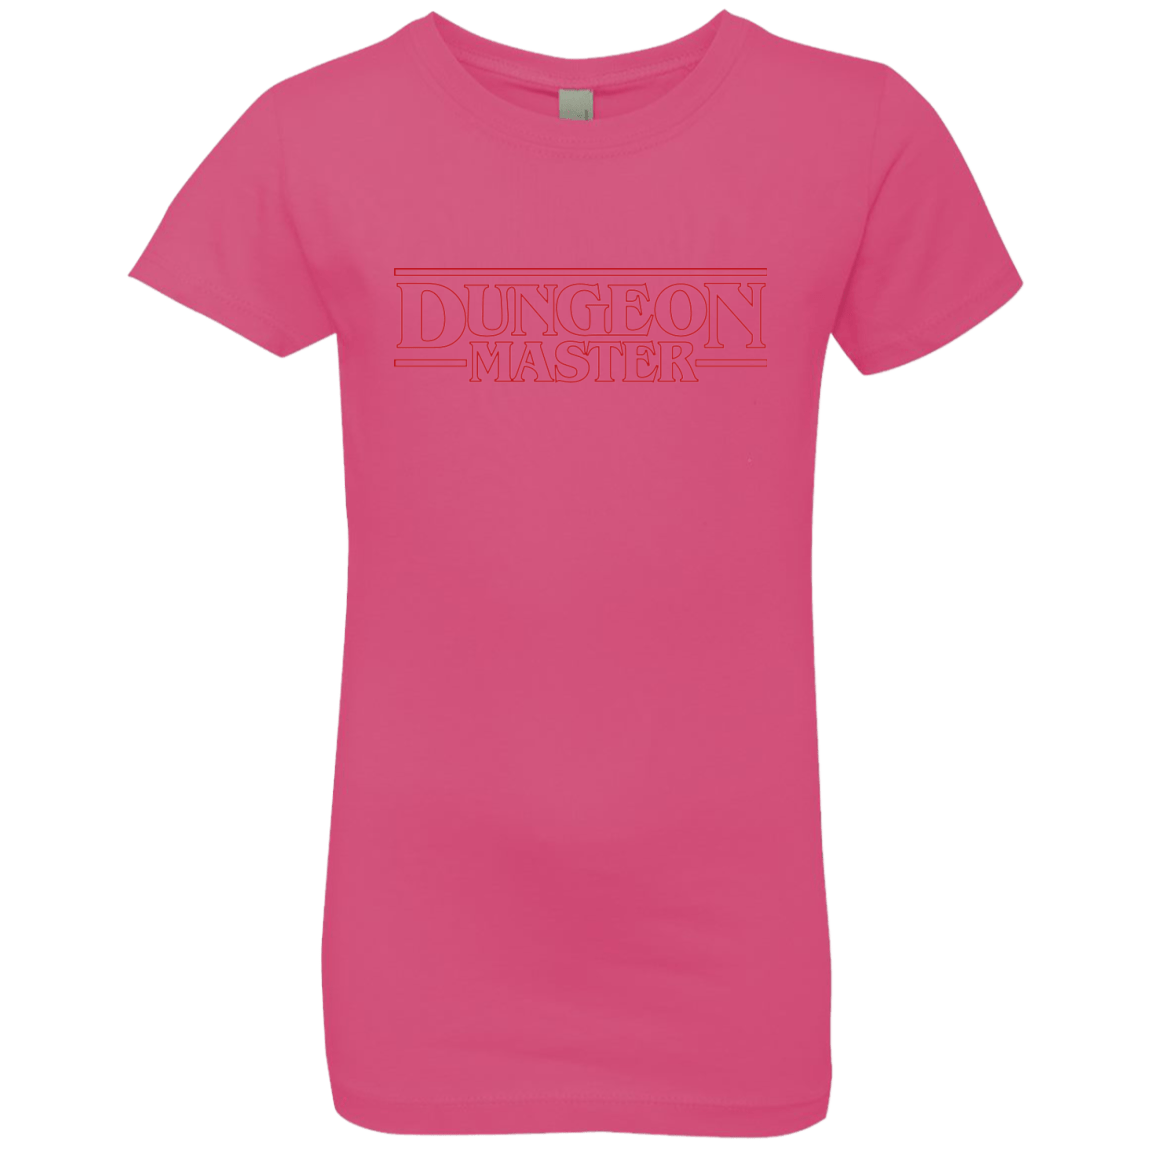 T-Shirts Hot Pink / YXS Dungeon Master Girls Premium T-Shirt